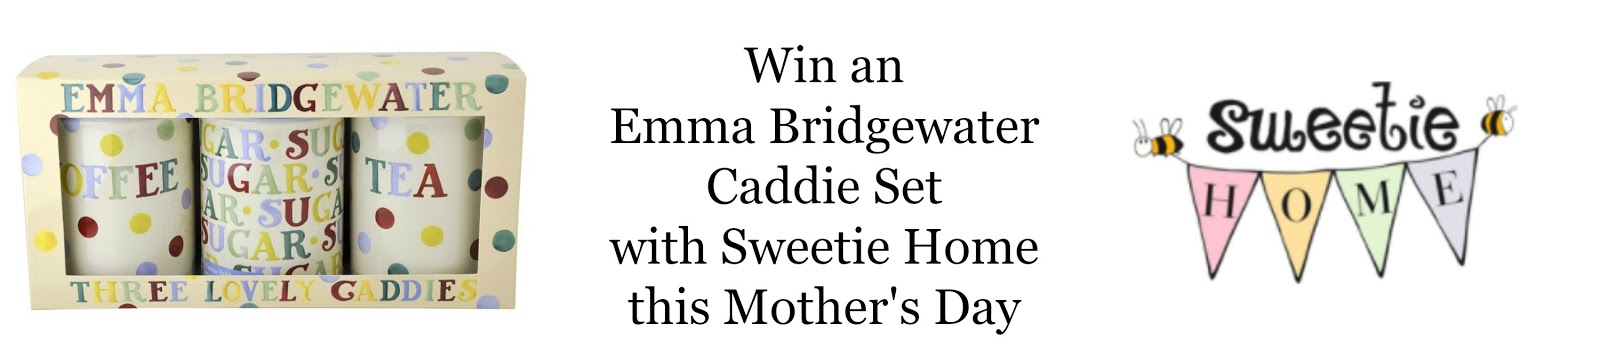 Mother's Day Gift Ideas with Sweetie Home in Northumberland plus an Emma Bridgewater Giveaway